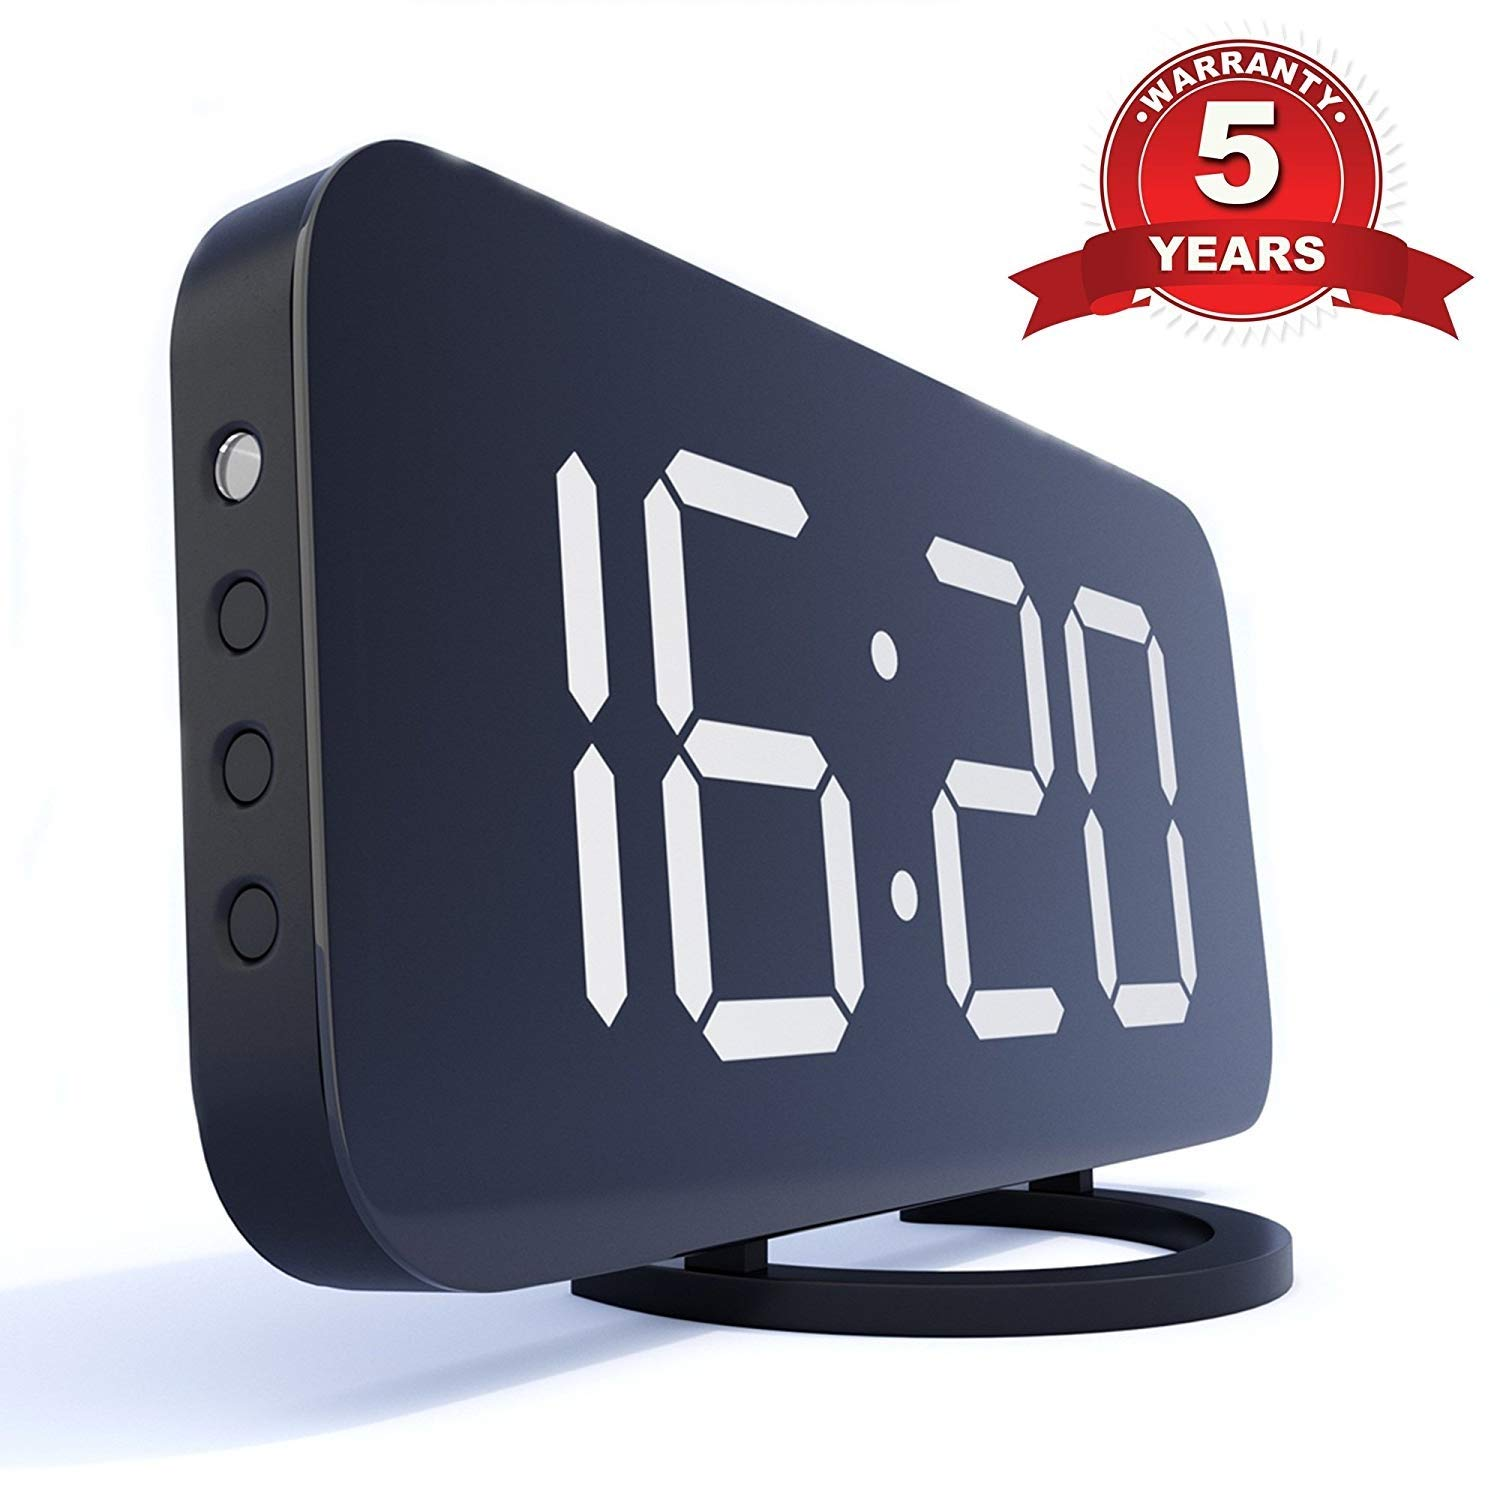 Home LED Clock, No Frills Simple Operation, Large Night Light, Loud Alarm, Snooze, Full Range Brightness Dimmer, Big White Digit Display, Black by TrendHolders